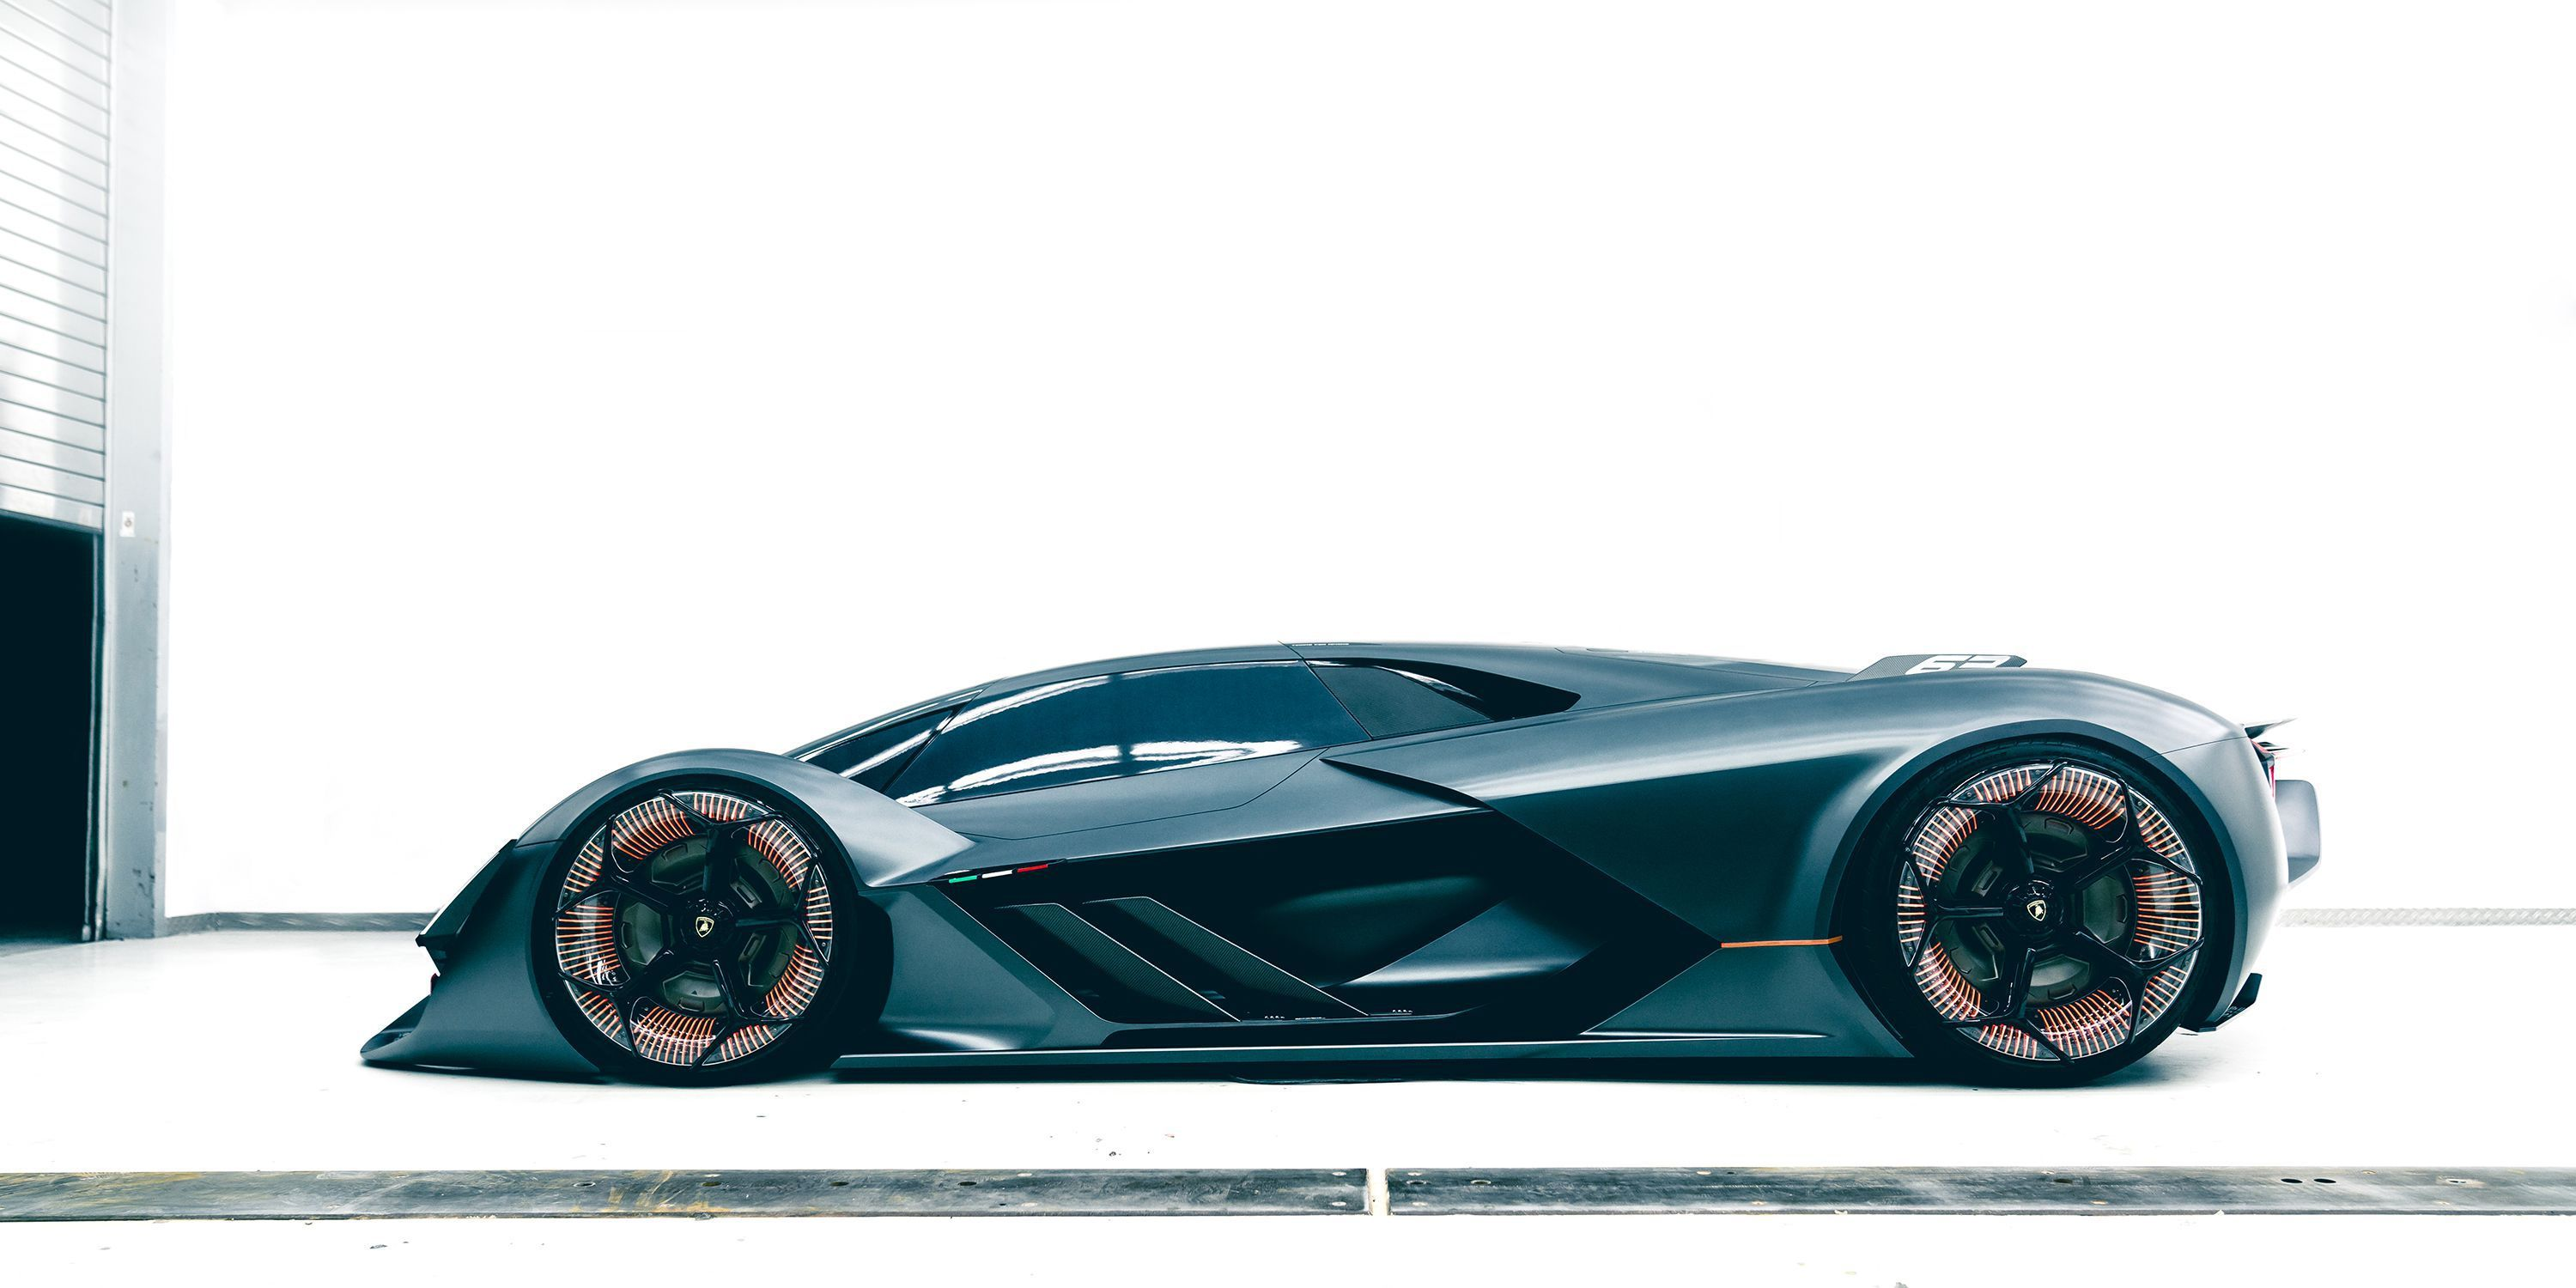 lamborghini is apparently planning a hybrid v12 glow in the darklamborghini is apparently planning a hybrid v12 glow in the dark hypercar